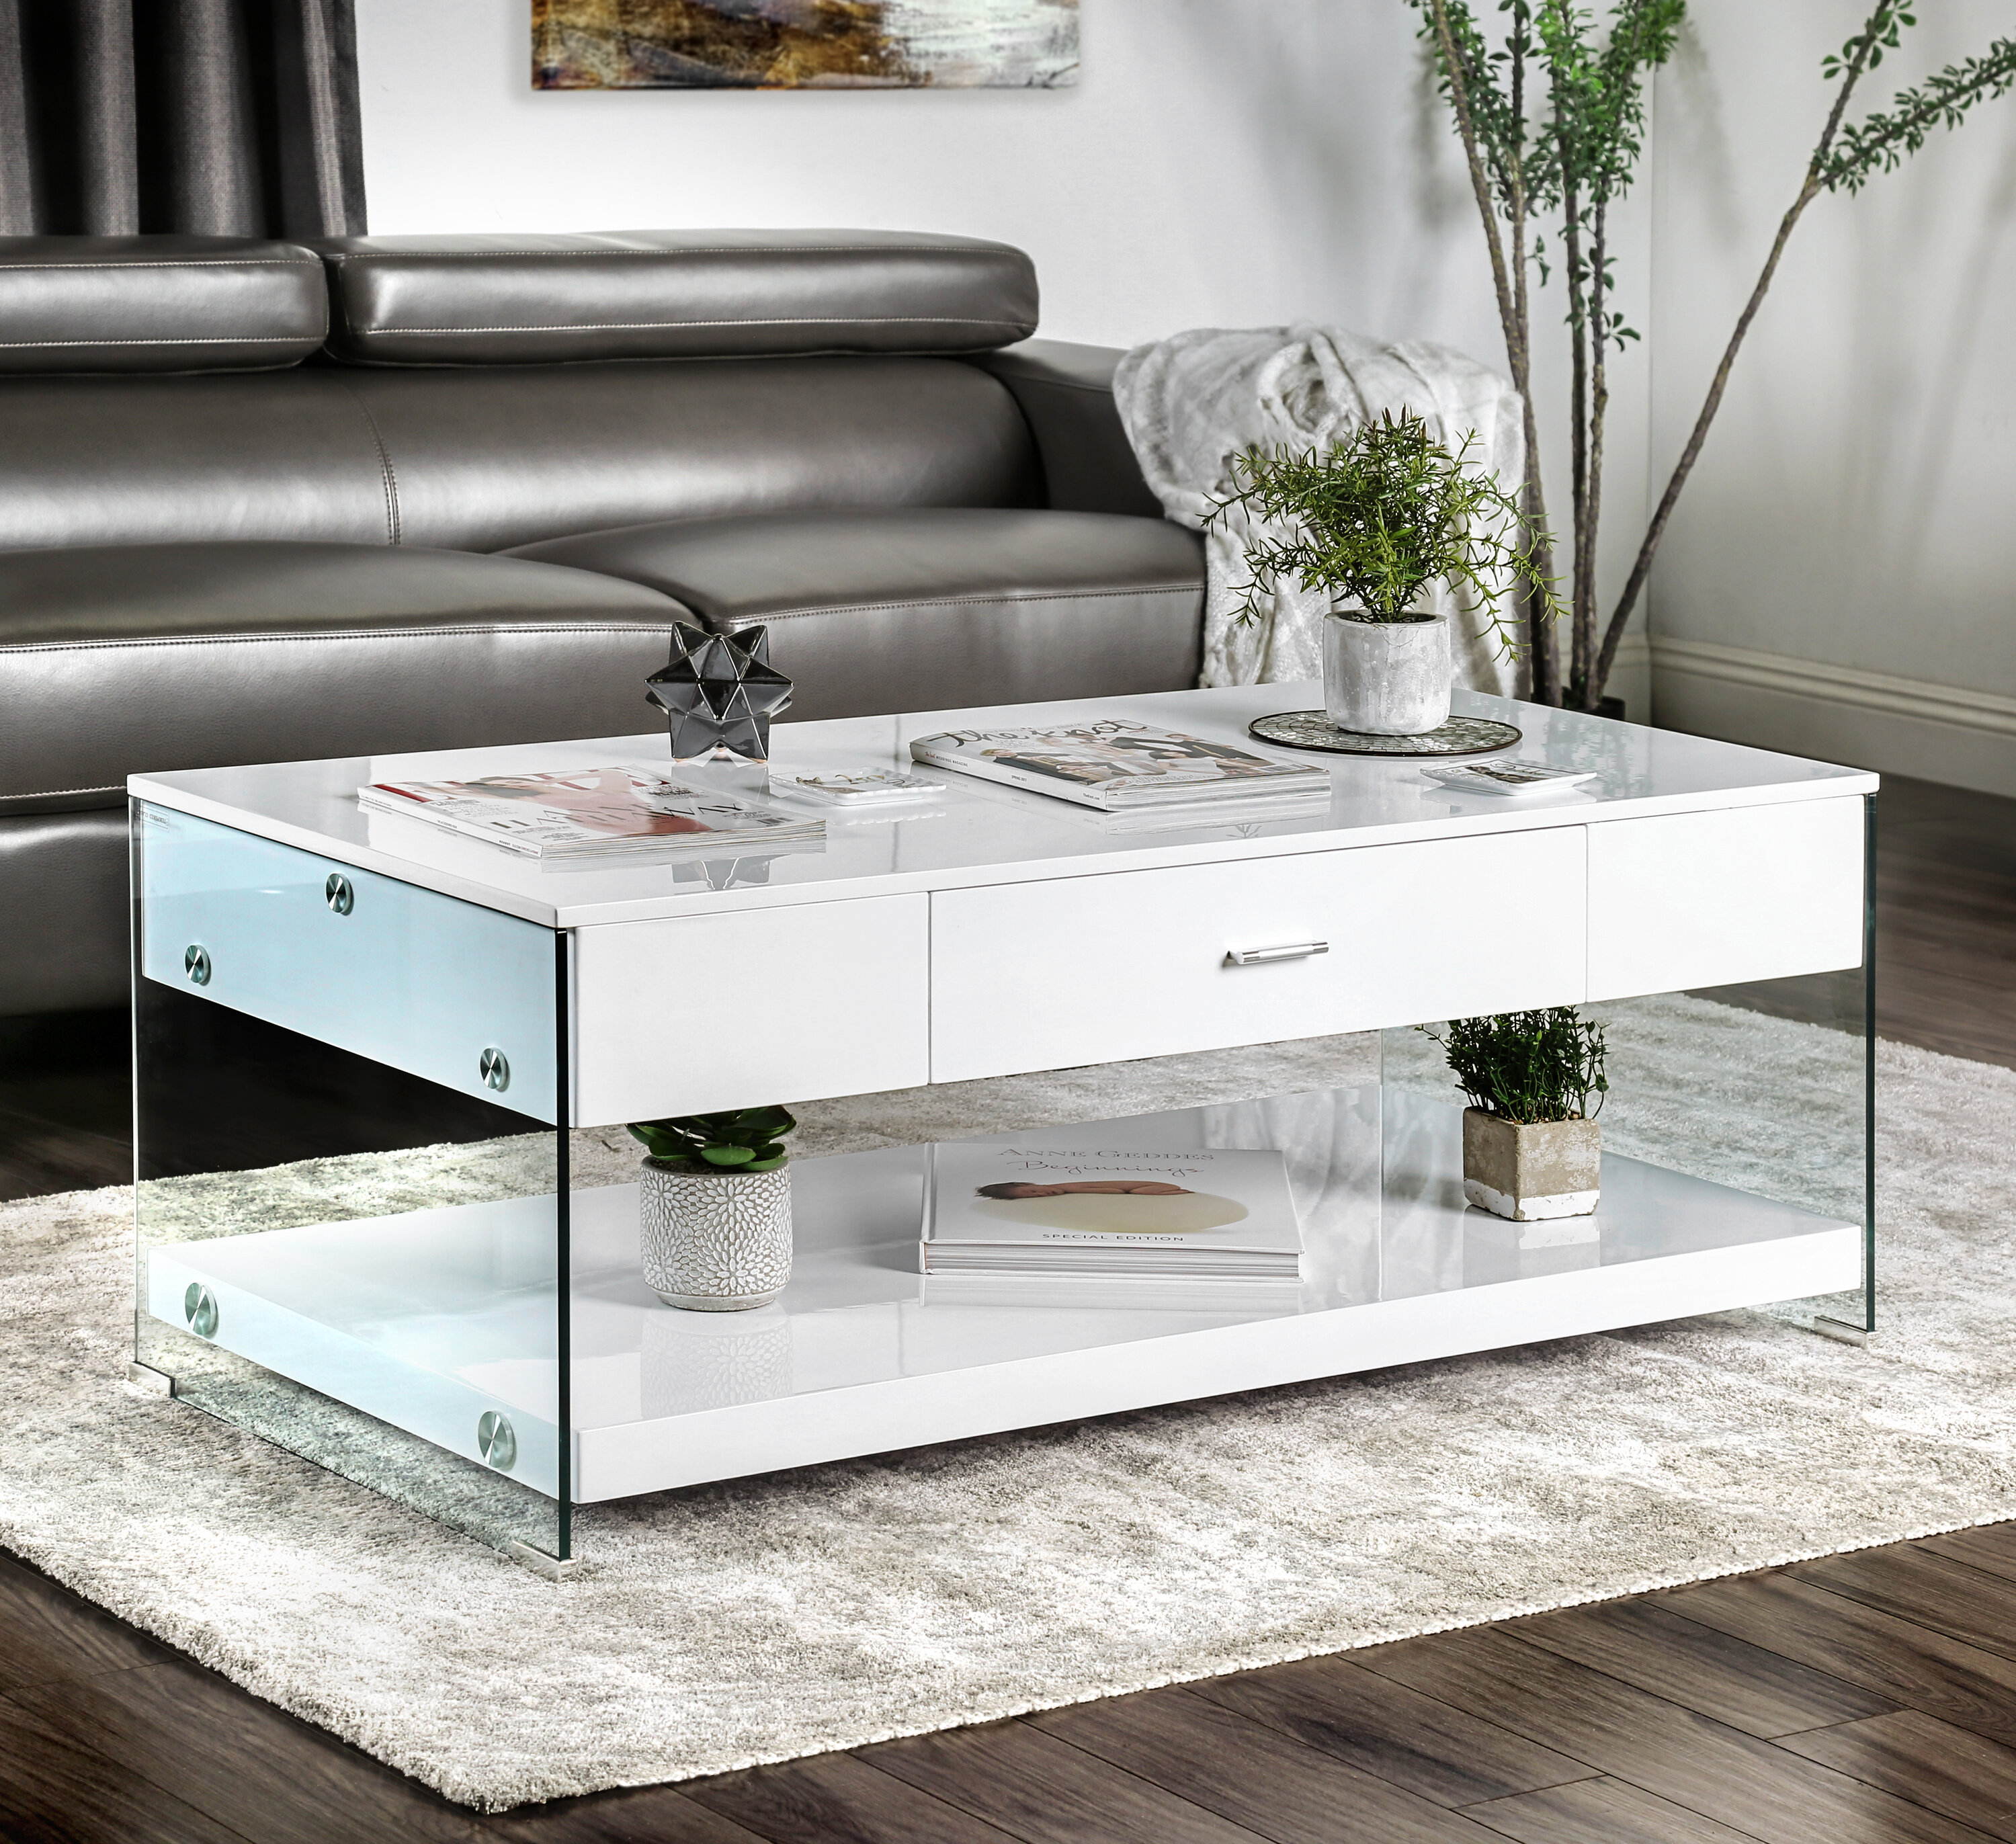 Contemporary Coffee Table.Trent Austin Design Guero Contemporary Coffee Table